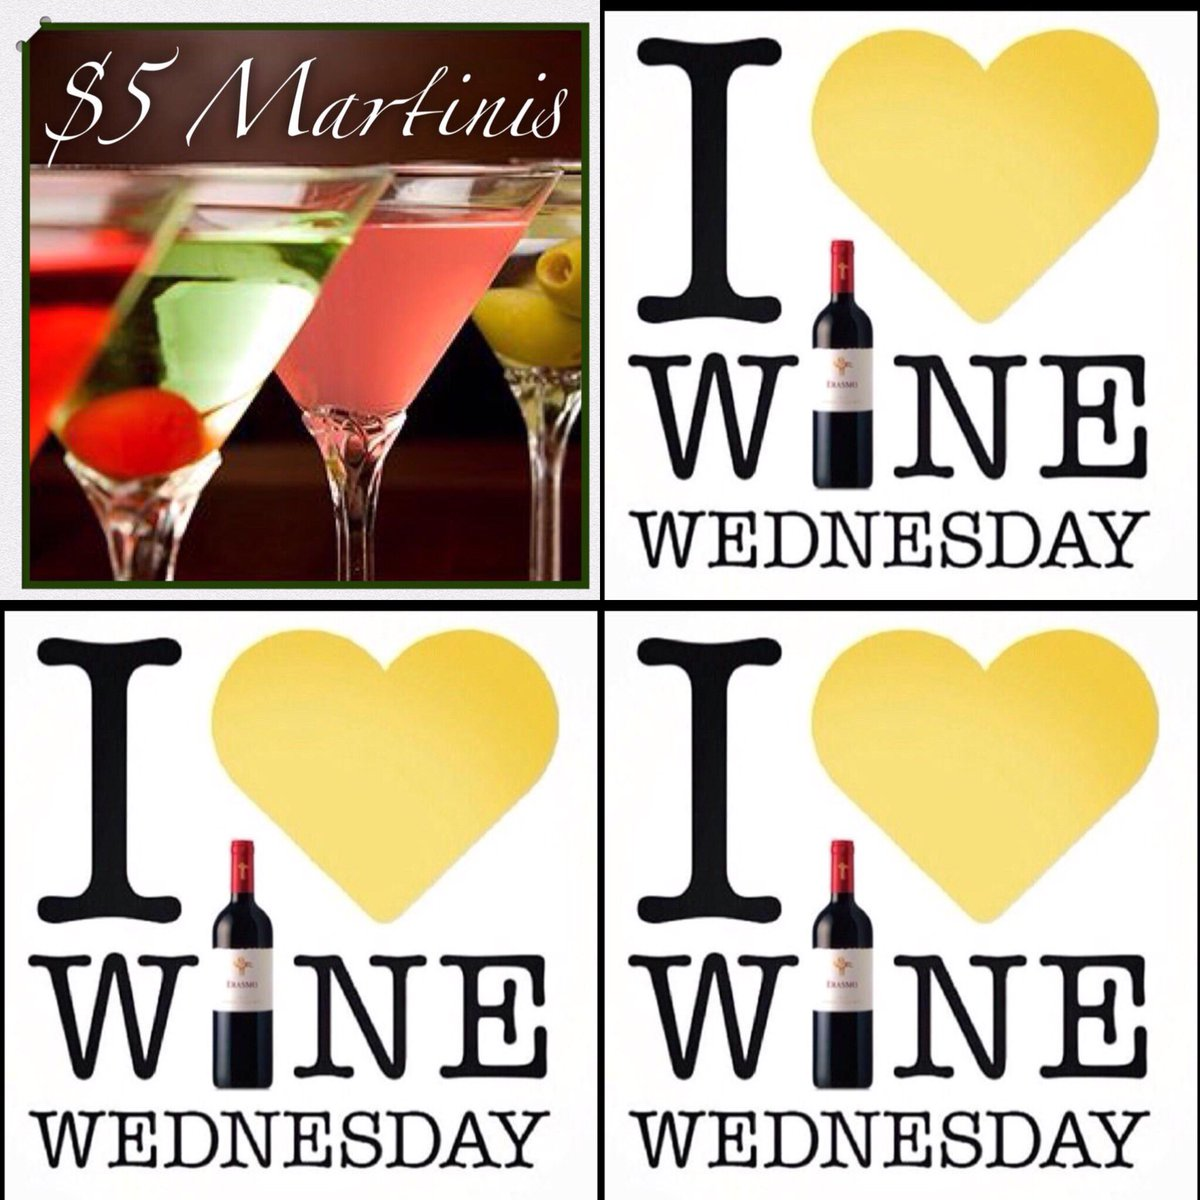 $5 OFF ALL WINES BY THE BOTTLE $5 HOUSE MARTINIS 🍸  #foodie #foodporn #wine #martini #winewednesday https://t.co/NhPFMqAZM2